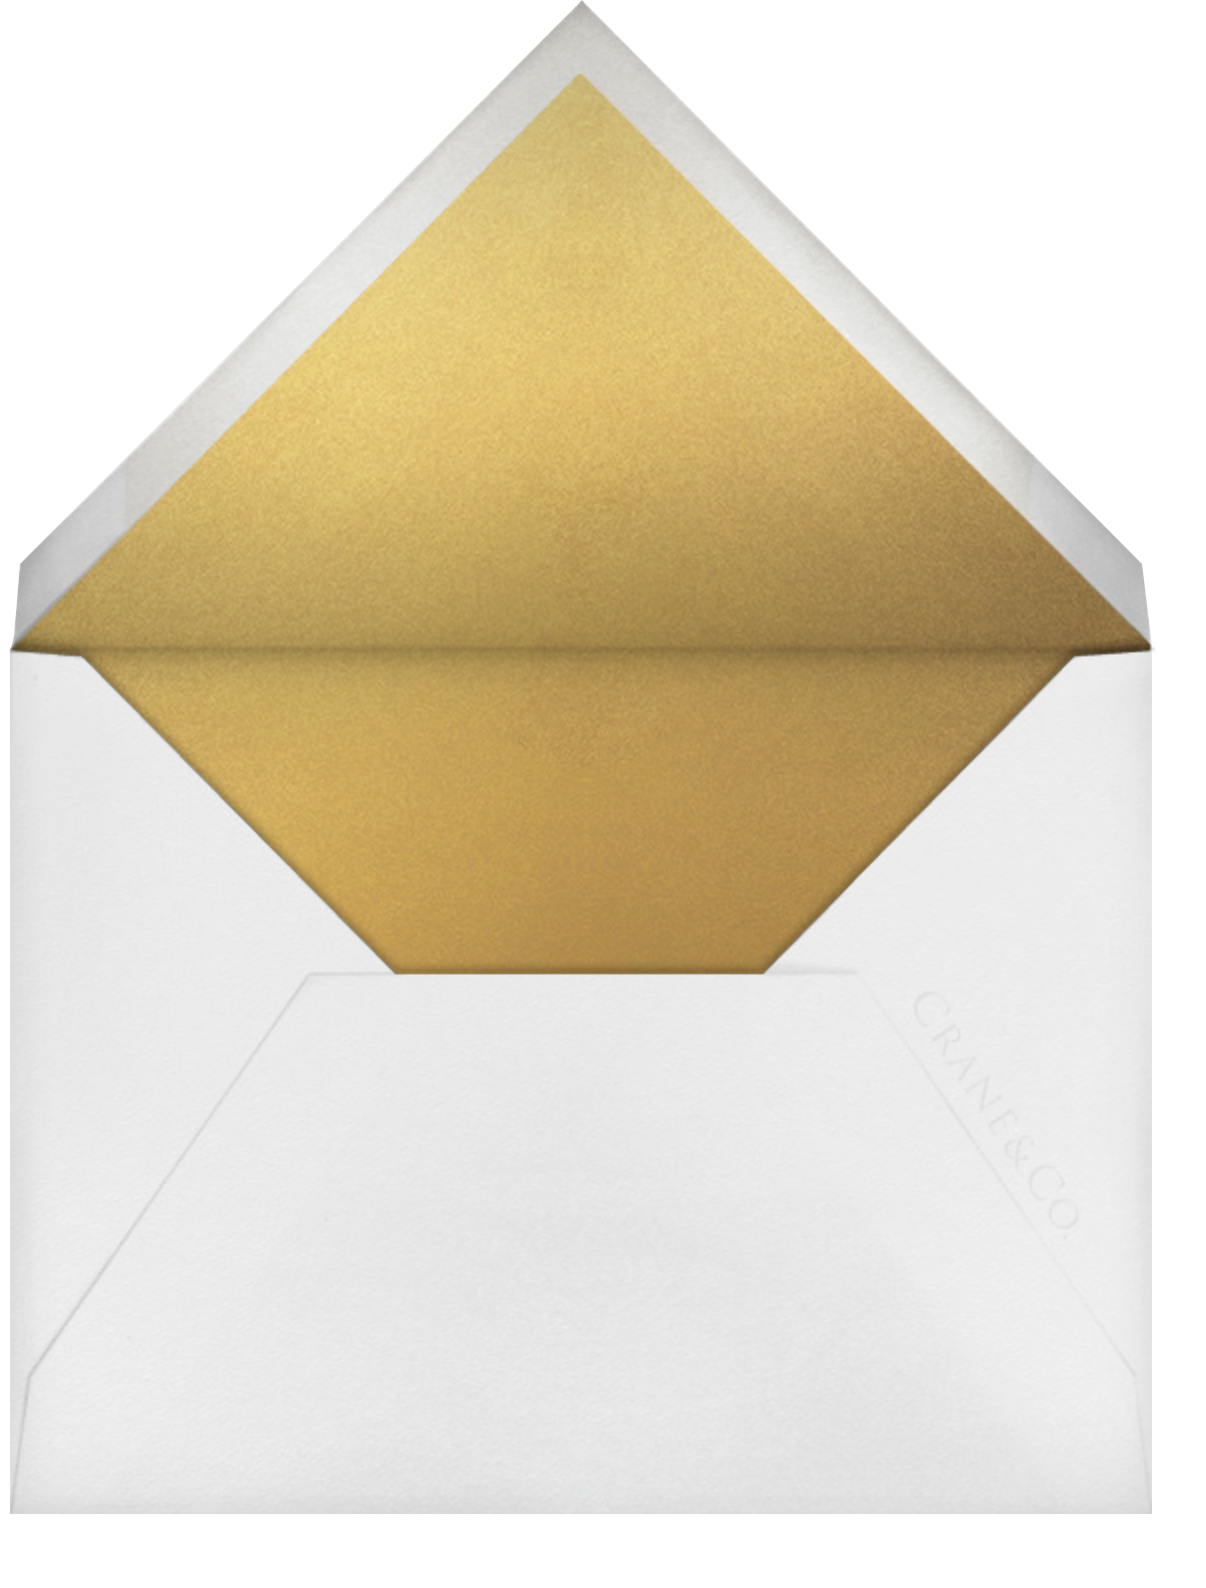 Notch - Gold - Vera Wang - General entertaining - envelope back